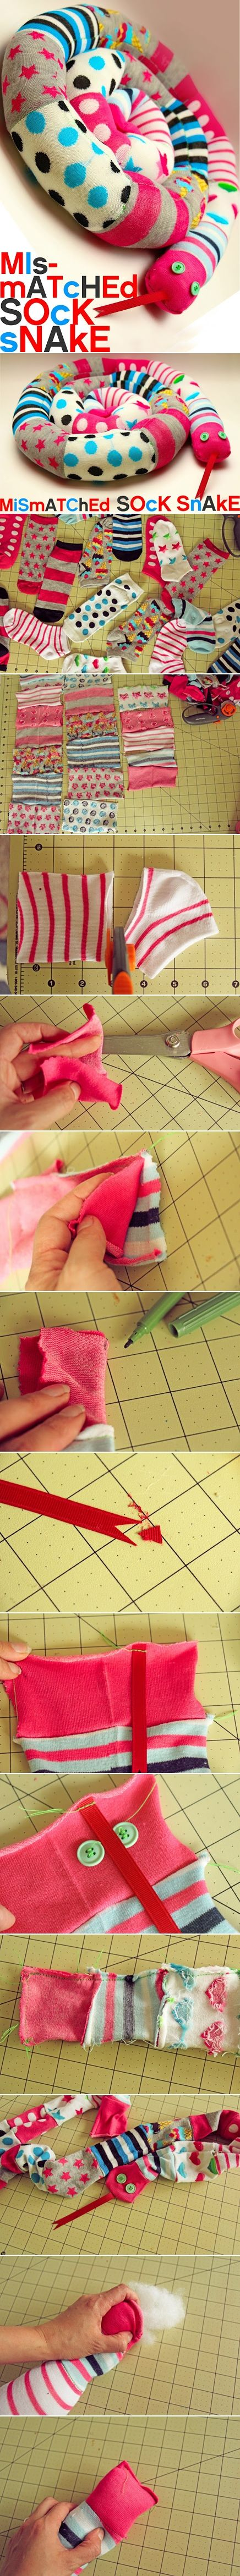 How-to-sew-cute-DIY-snakes-with-mismatched-socks-step-by-step-tutorial-instructions